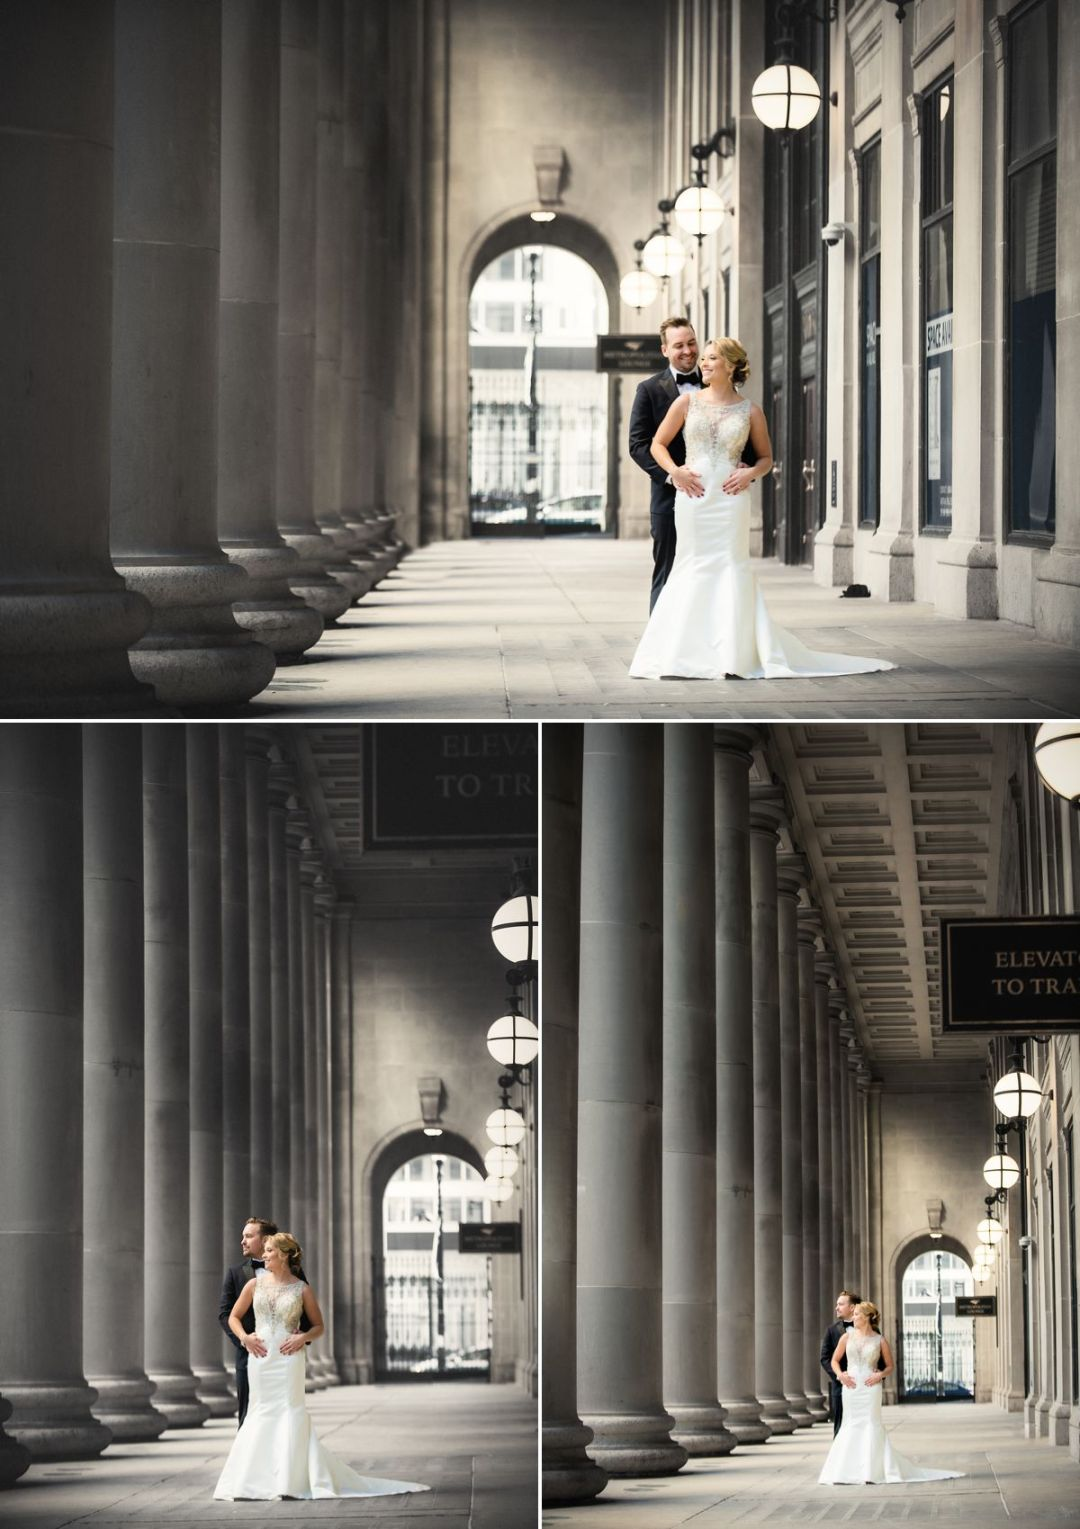 union station wedding portraits in chicago